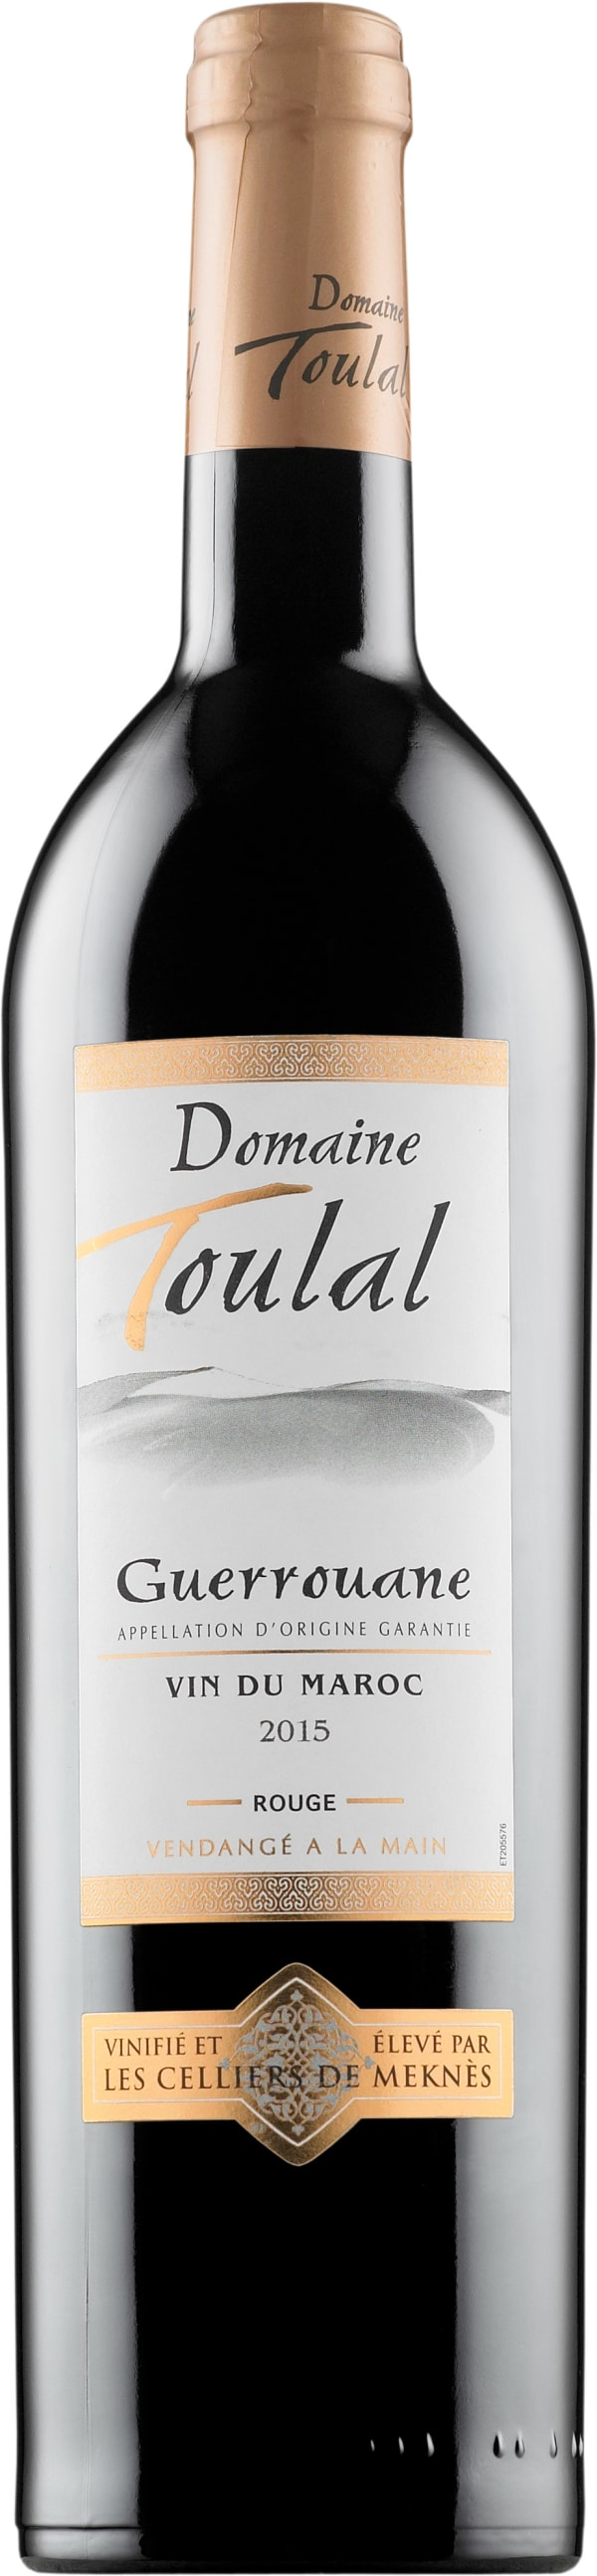 Domaine Toulal Rouge 2015